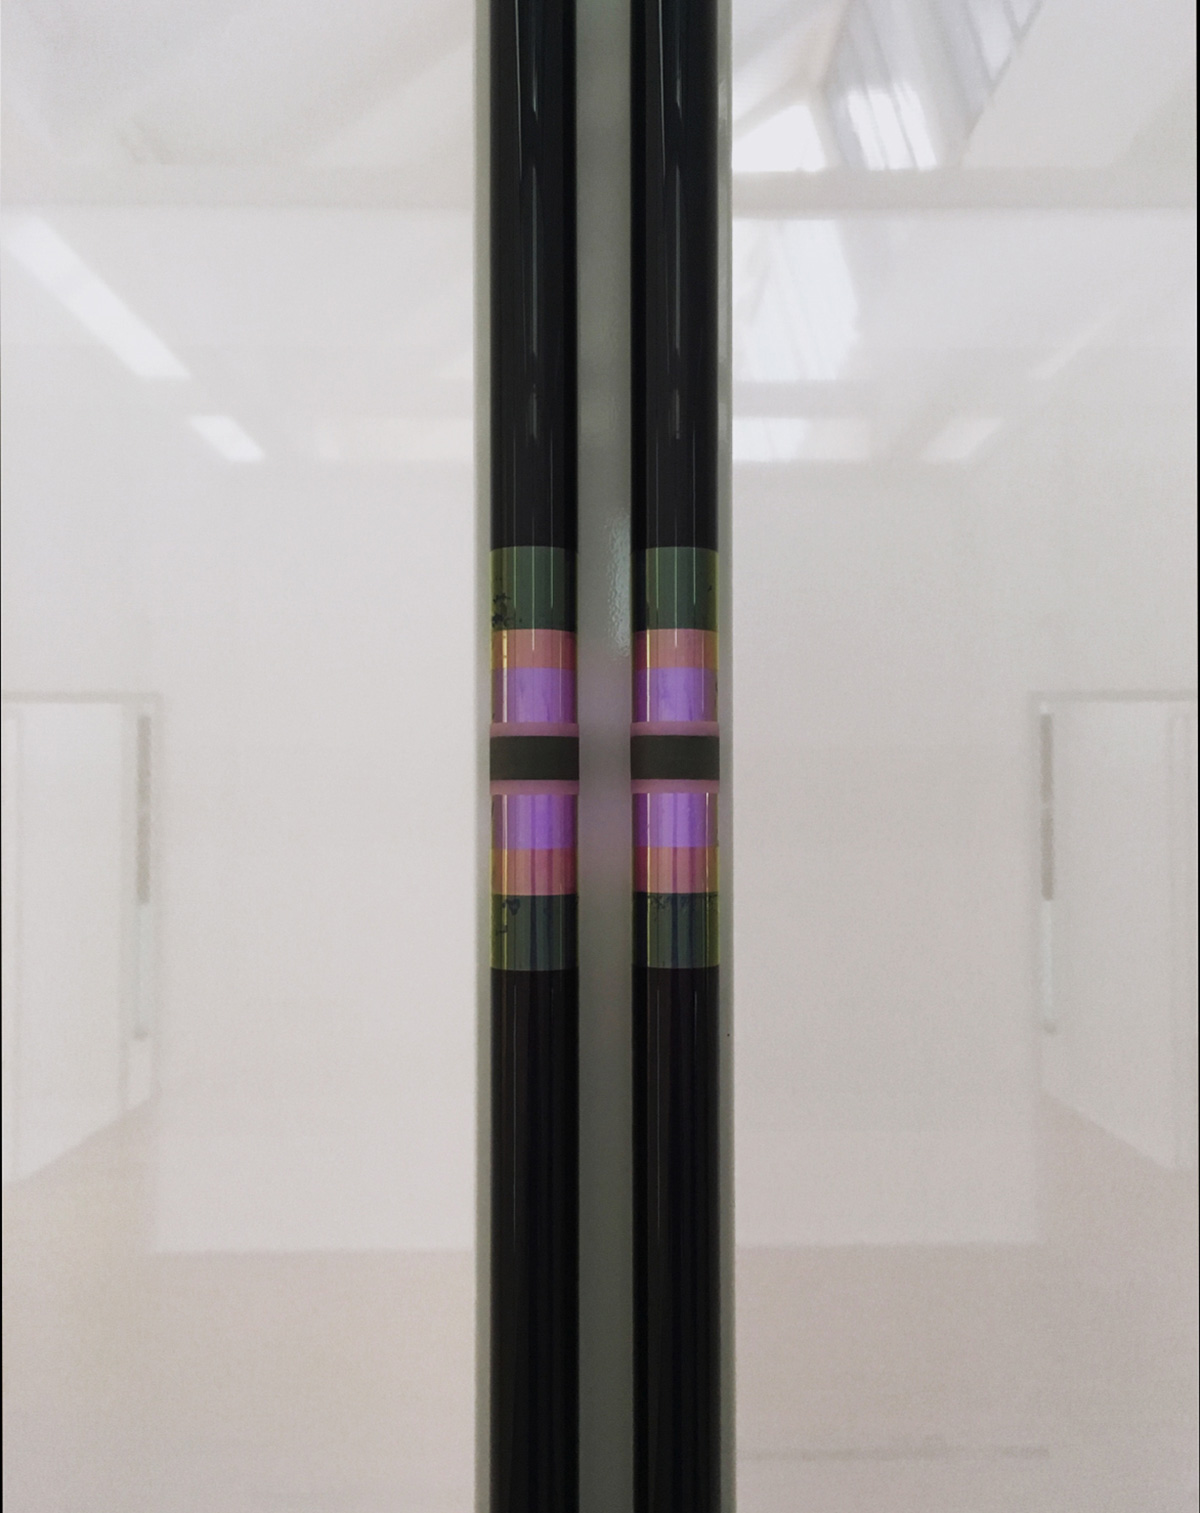 Robert Irwin's <em>Excursus: Homage to the Square<sup>3</sup></em>